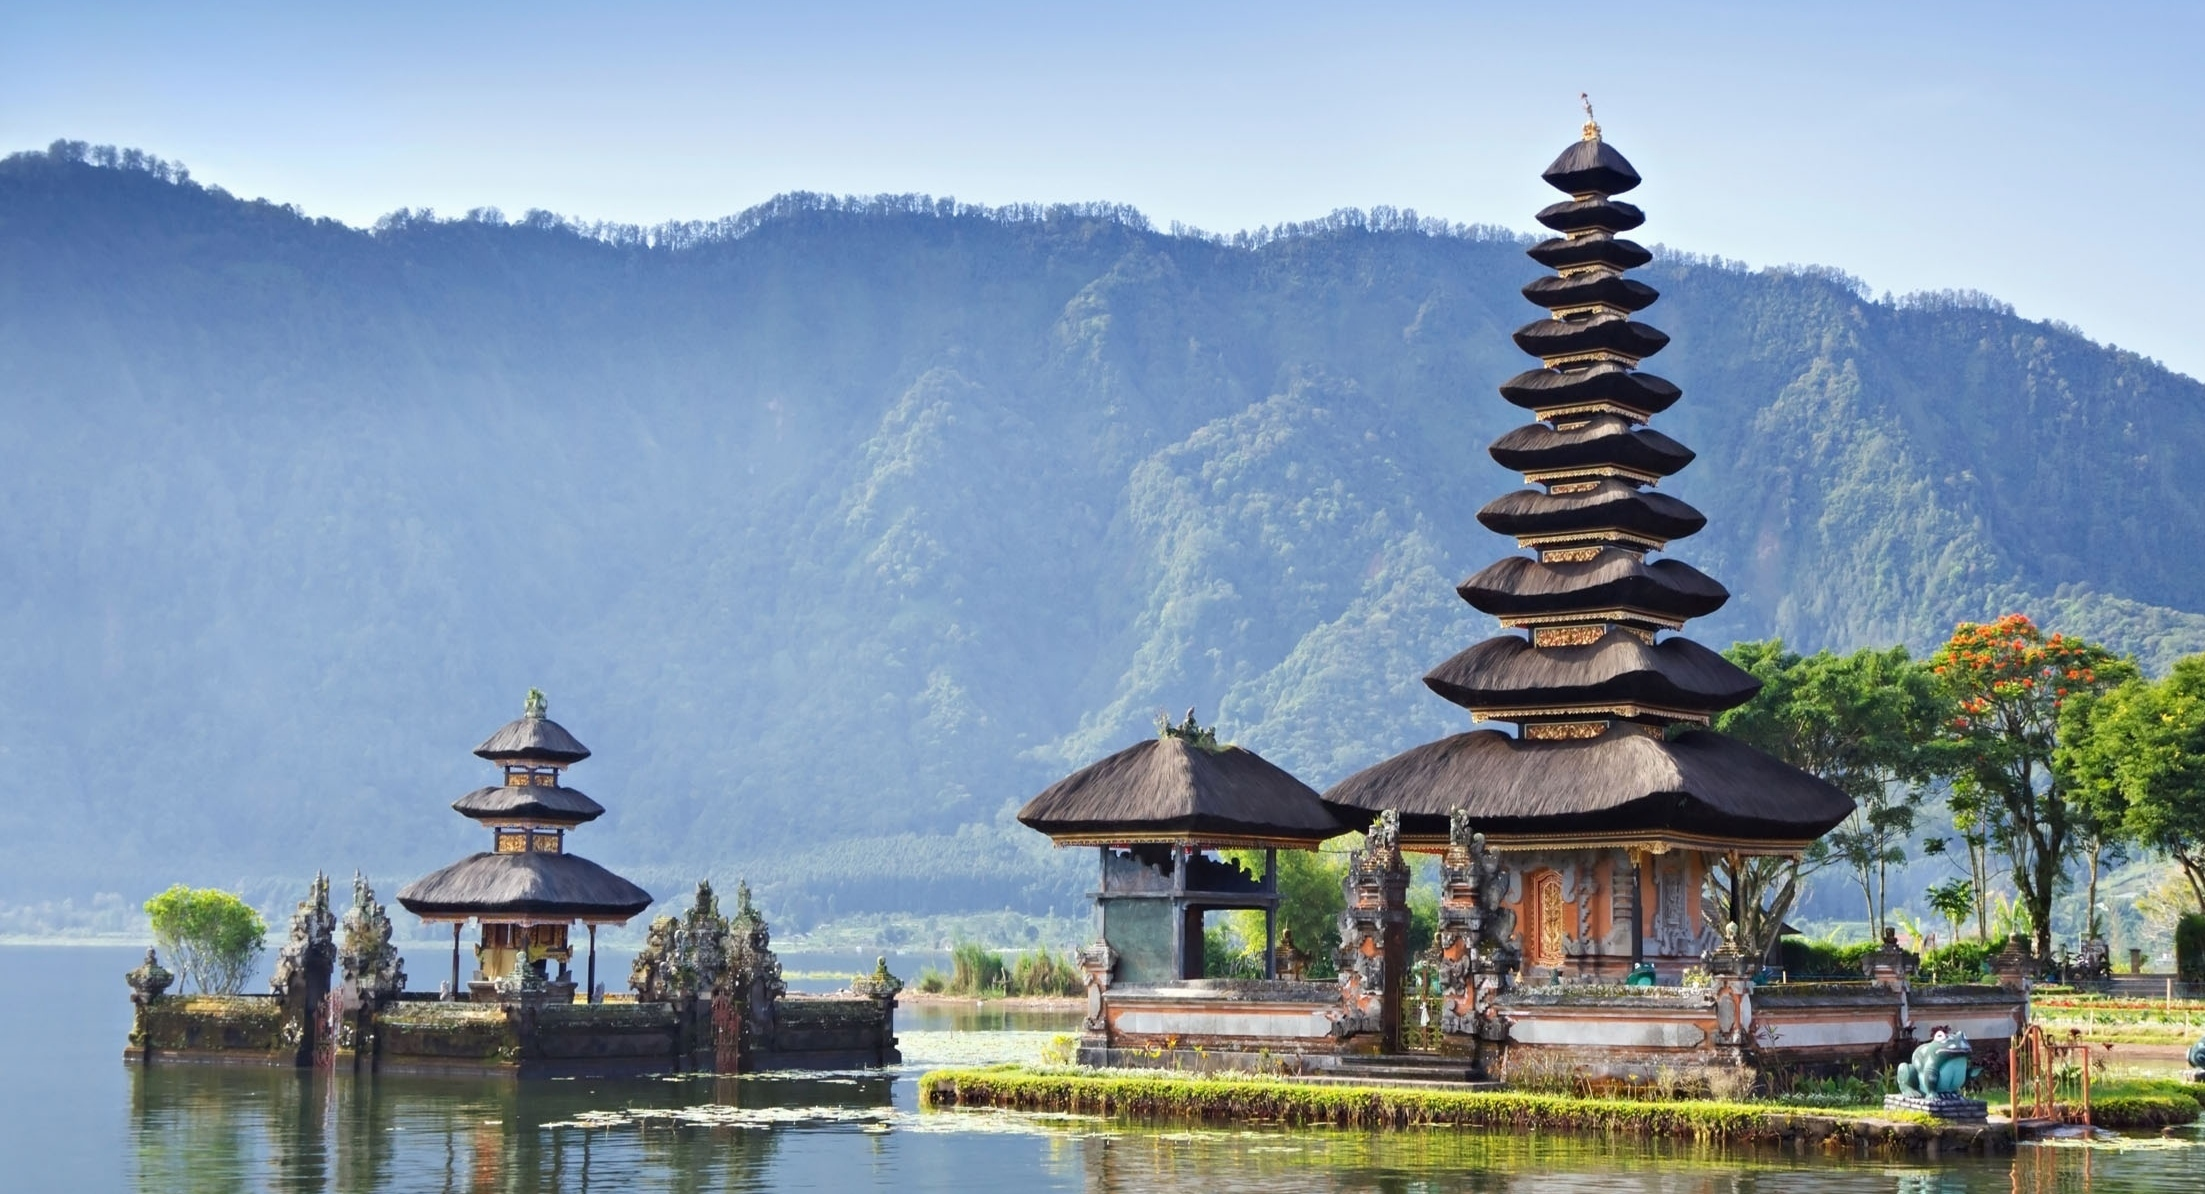 Bali Named World's #1 Tourism Destination by TripAdvisor